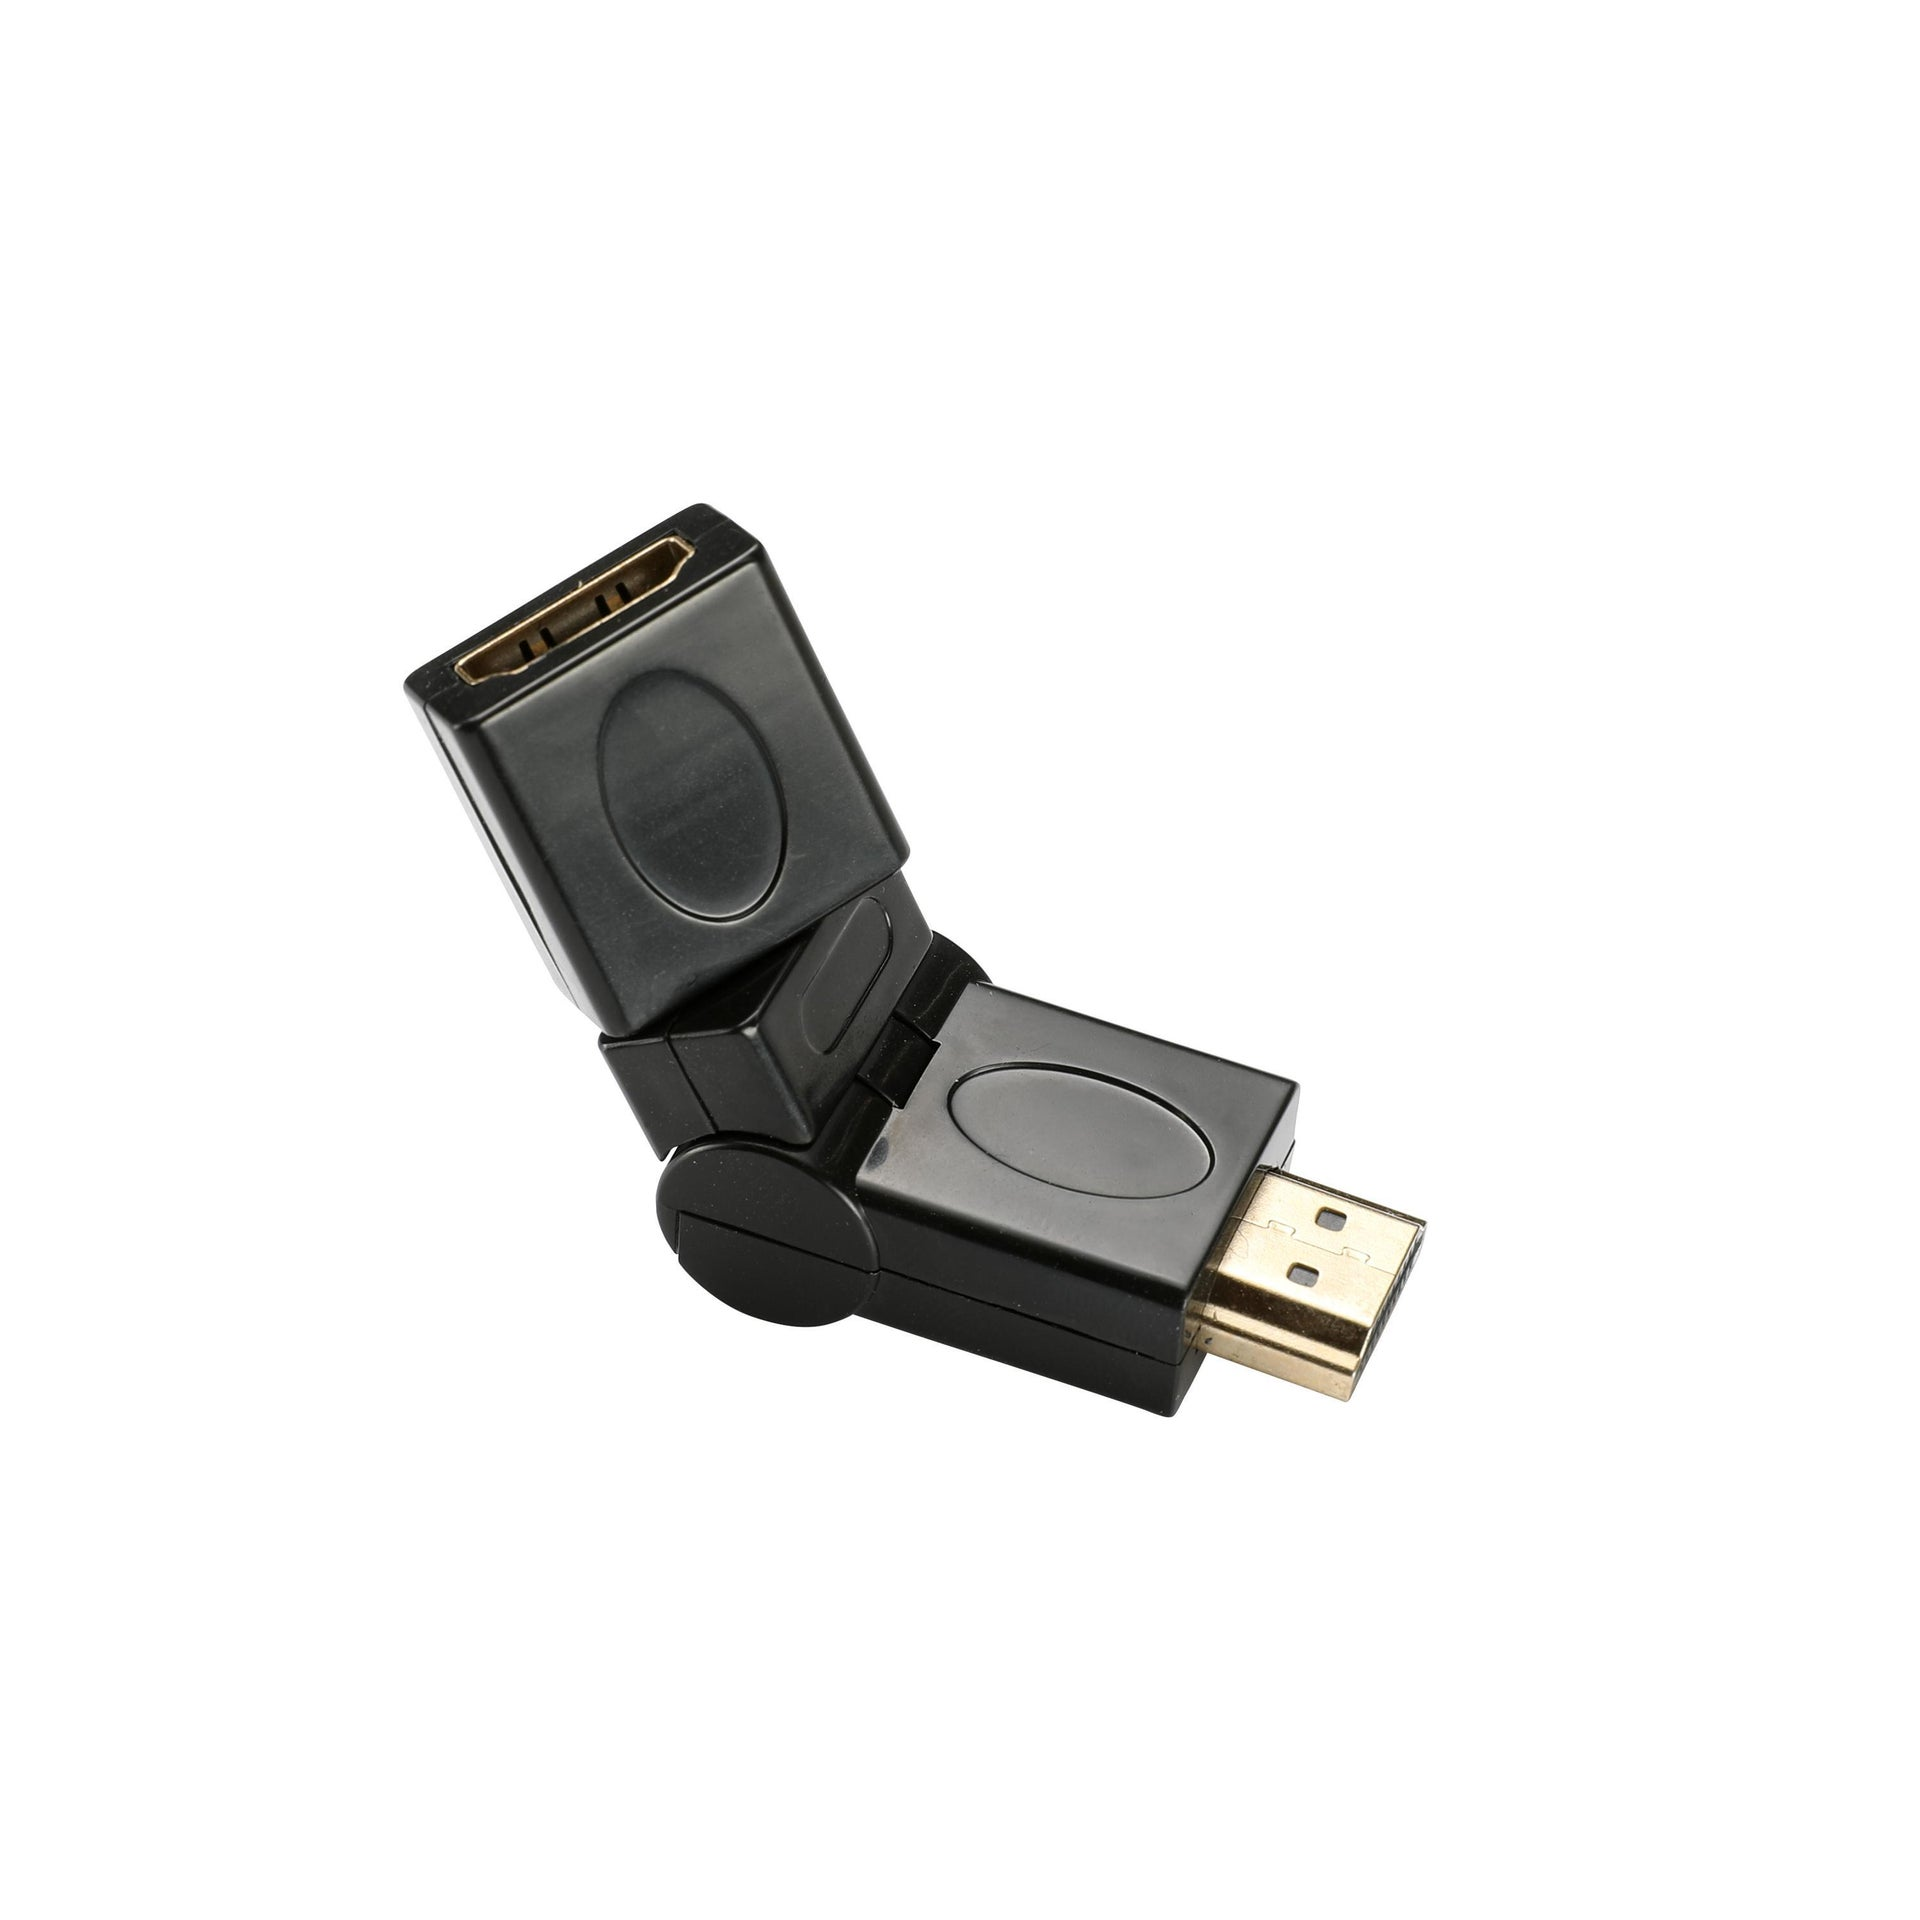 Adattatore HDMI uscita HDMI high speed EVOLOGY high speed - 4